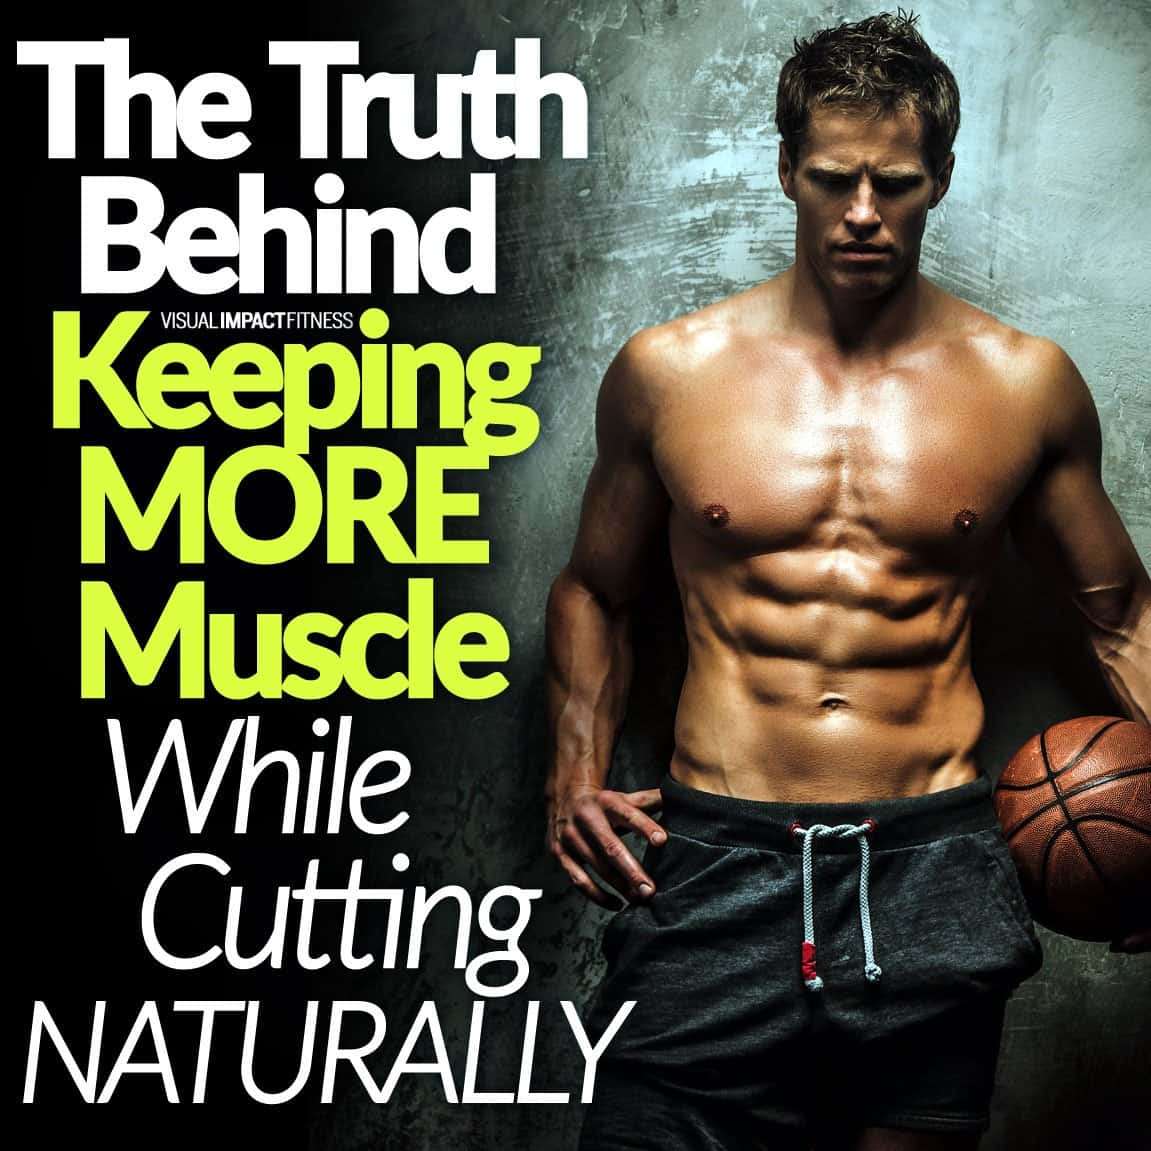 Keeping MORE Muscle While Cutting NATURALLY